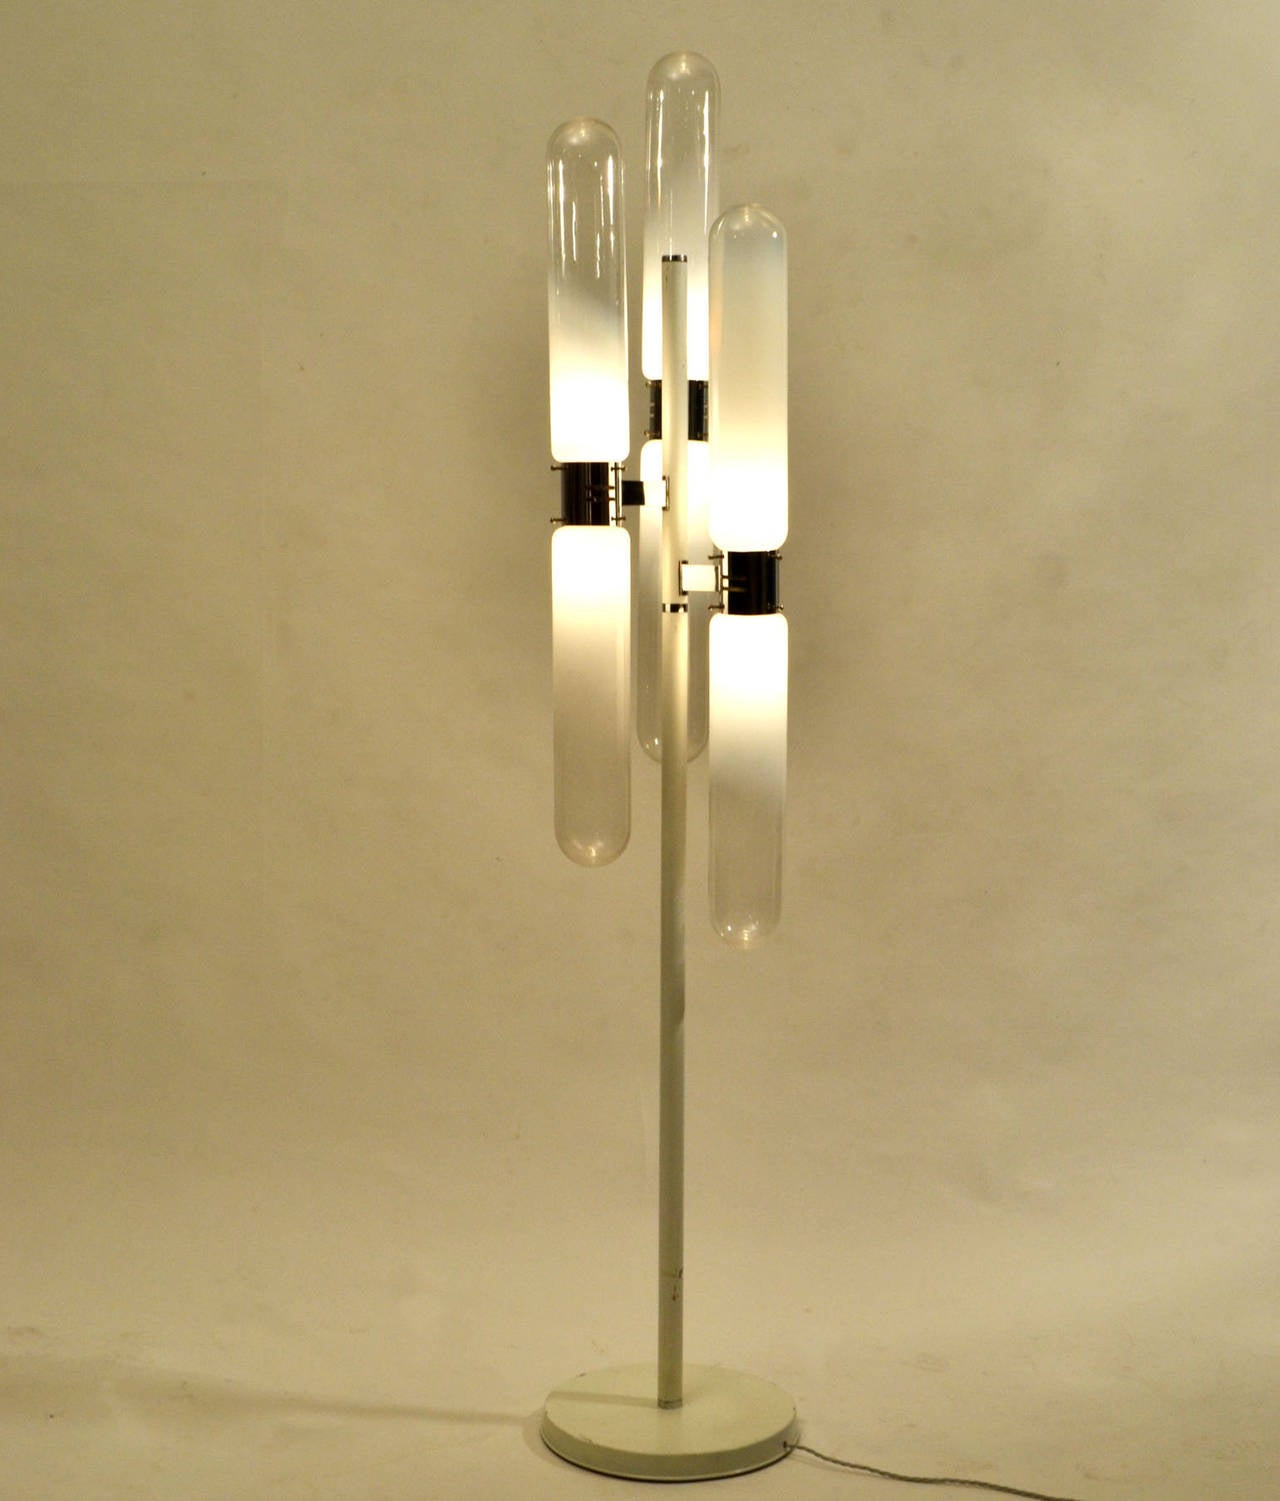 Floor lamp with six hand blown tube shades connected upwards and downwards to the center frame in chrome and white metal. The glass is colored from milk white fading to translucent and to a clear diffused the light.